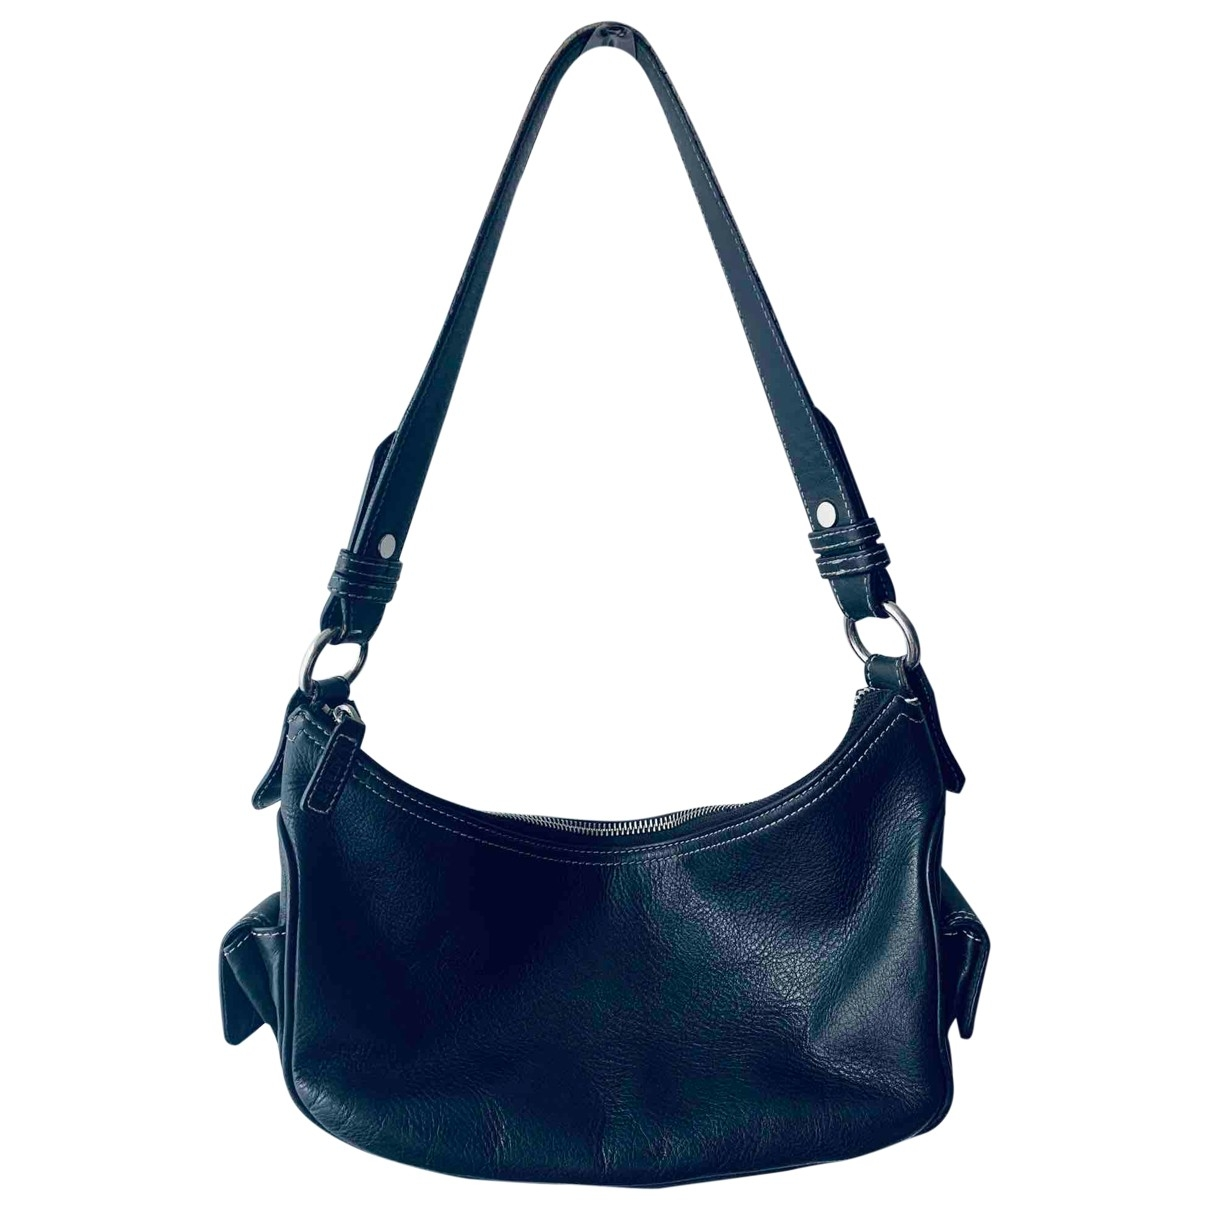 Lauren Ralph Lauren \N Black Leather handbag for Women \N